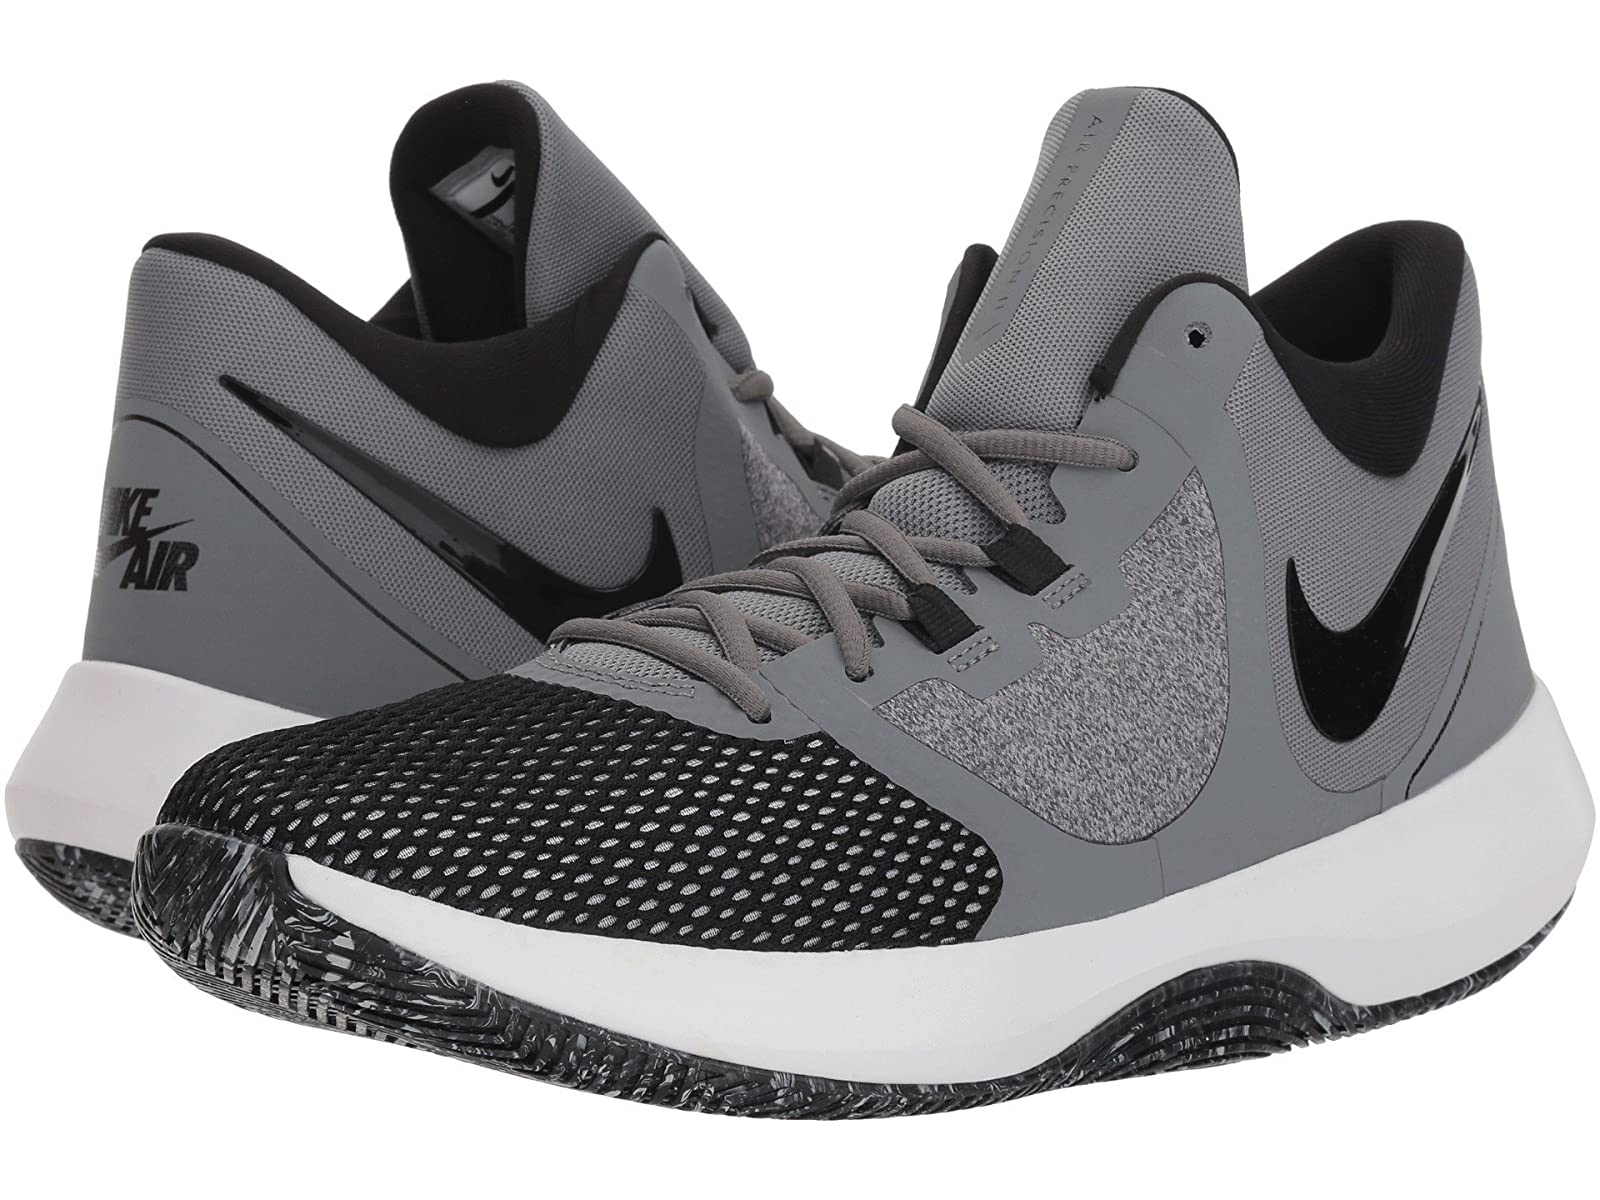 Nike Air Precision IIAtmospheric grades have affordable shoes